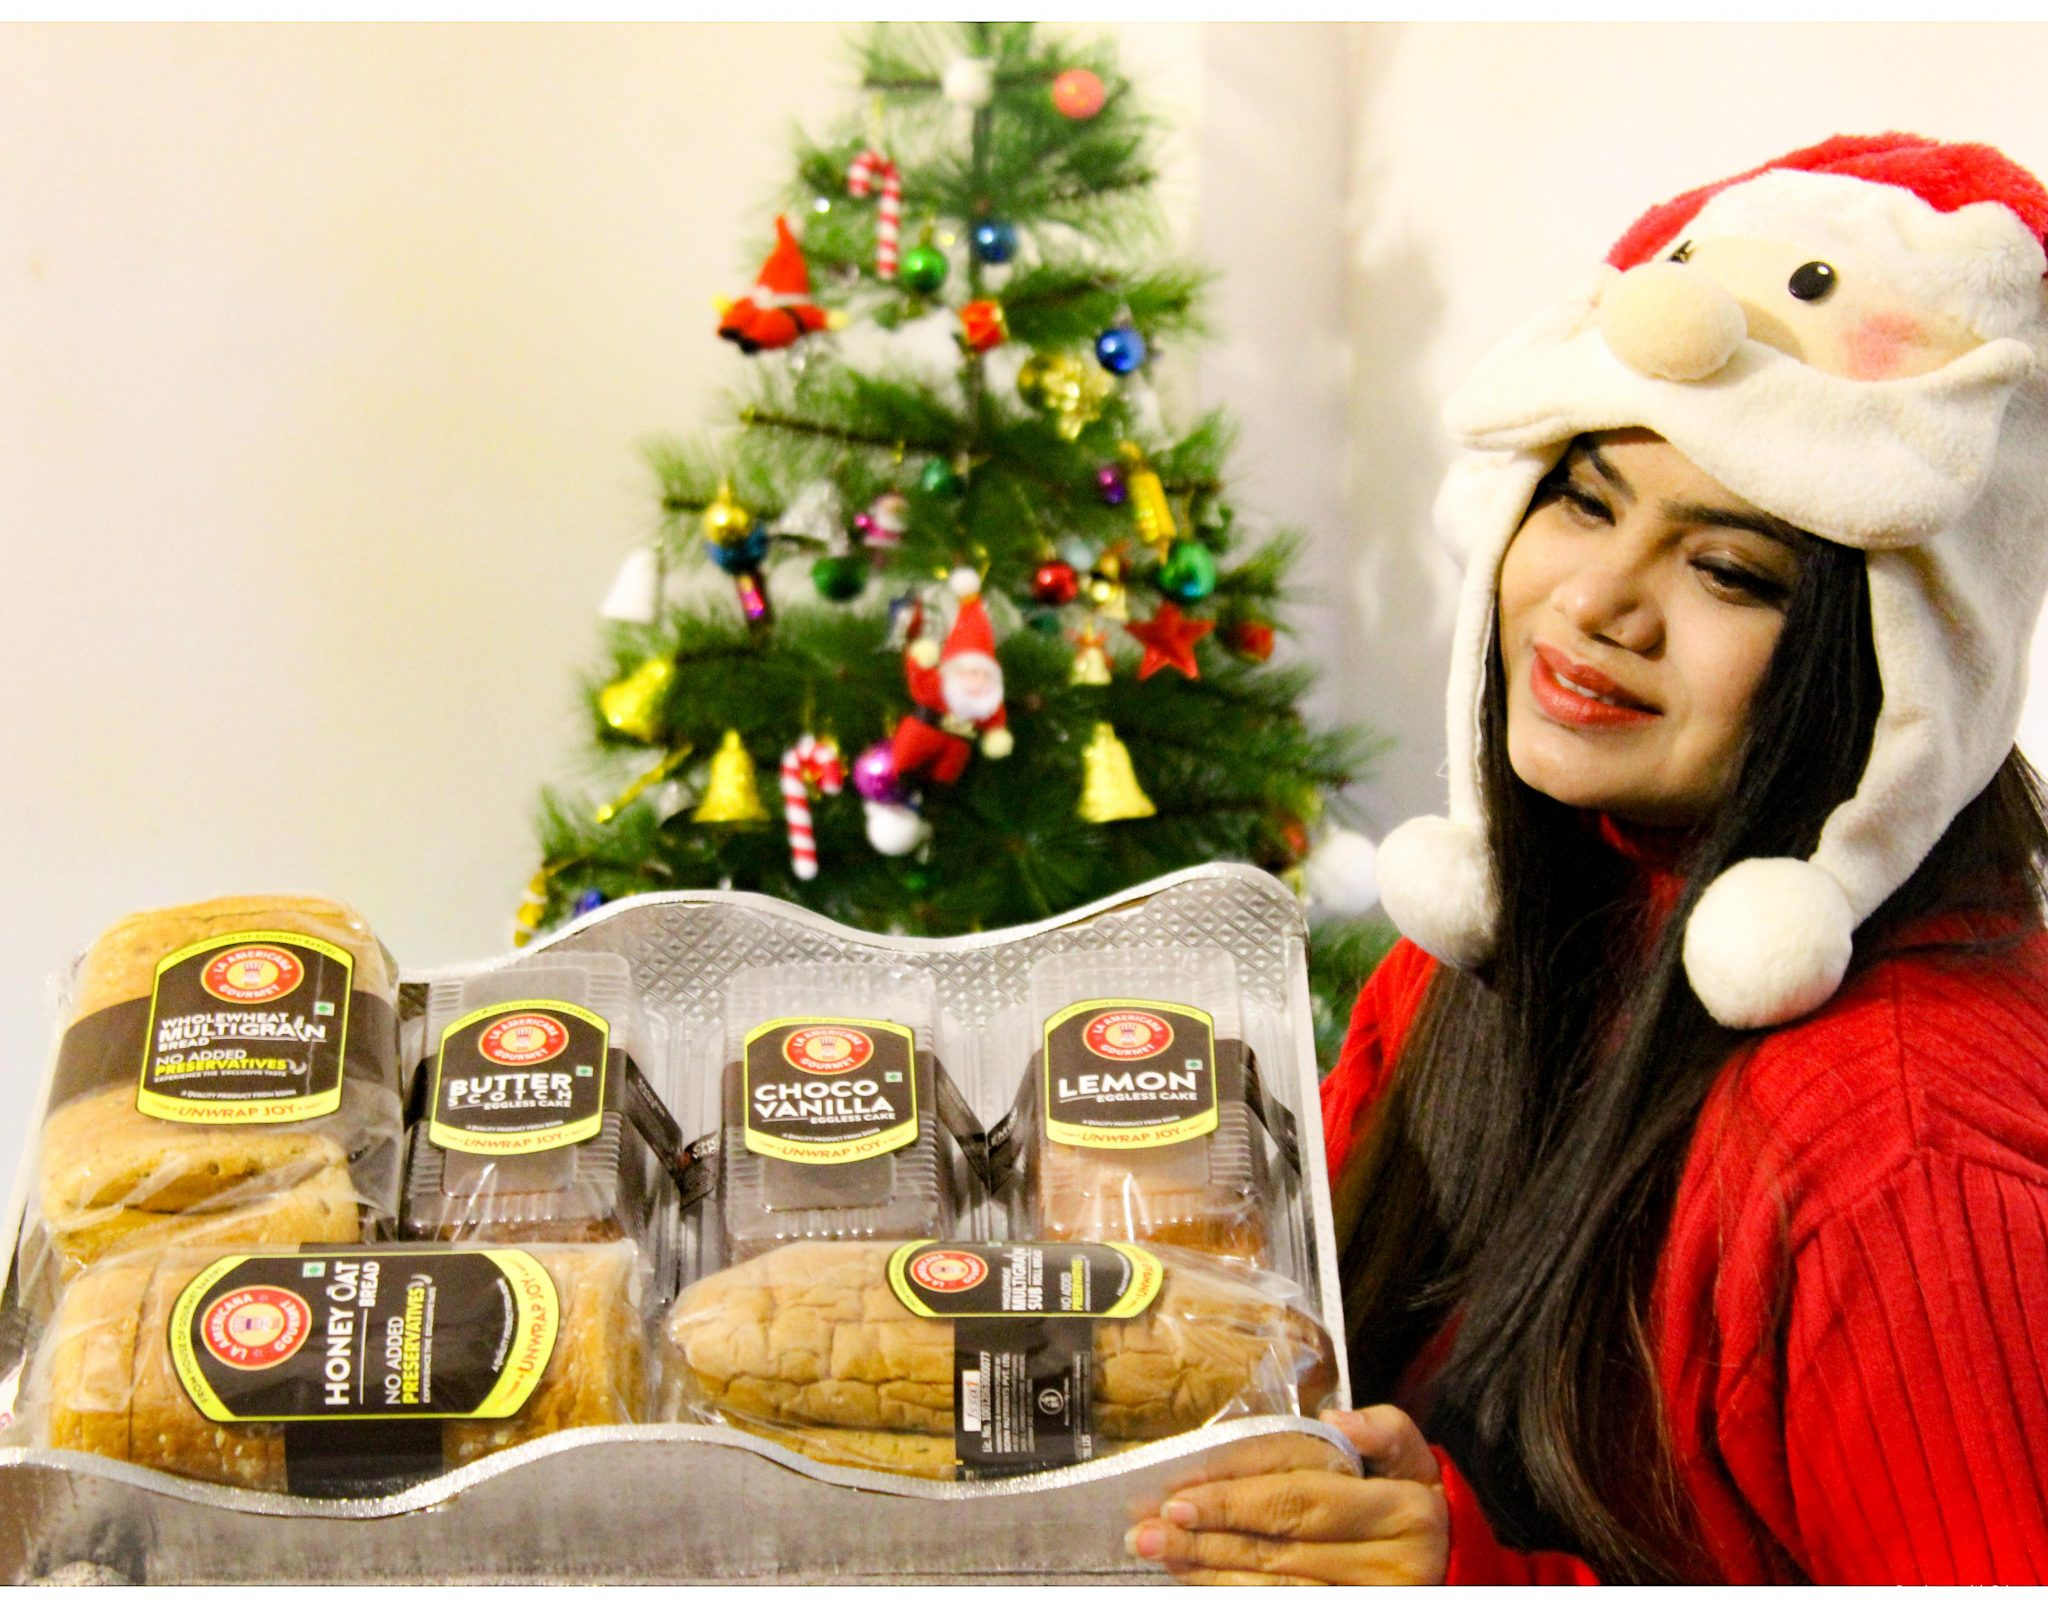 Best Christmas present - This Christmas Spread Joy and Gift the Basket of Health from La Americana Gourmet Range by Bonn India